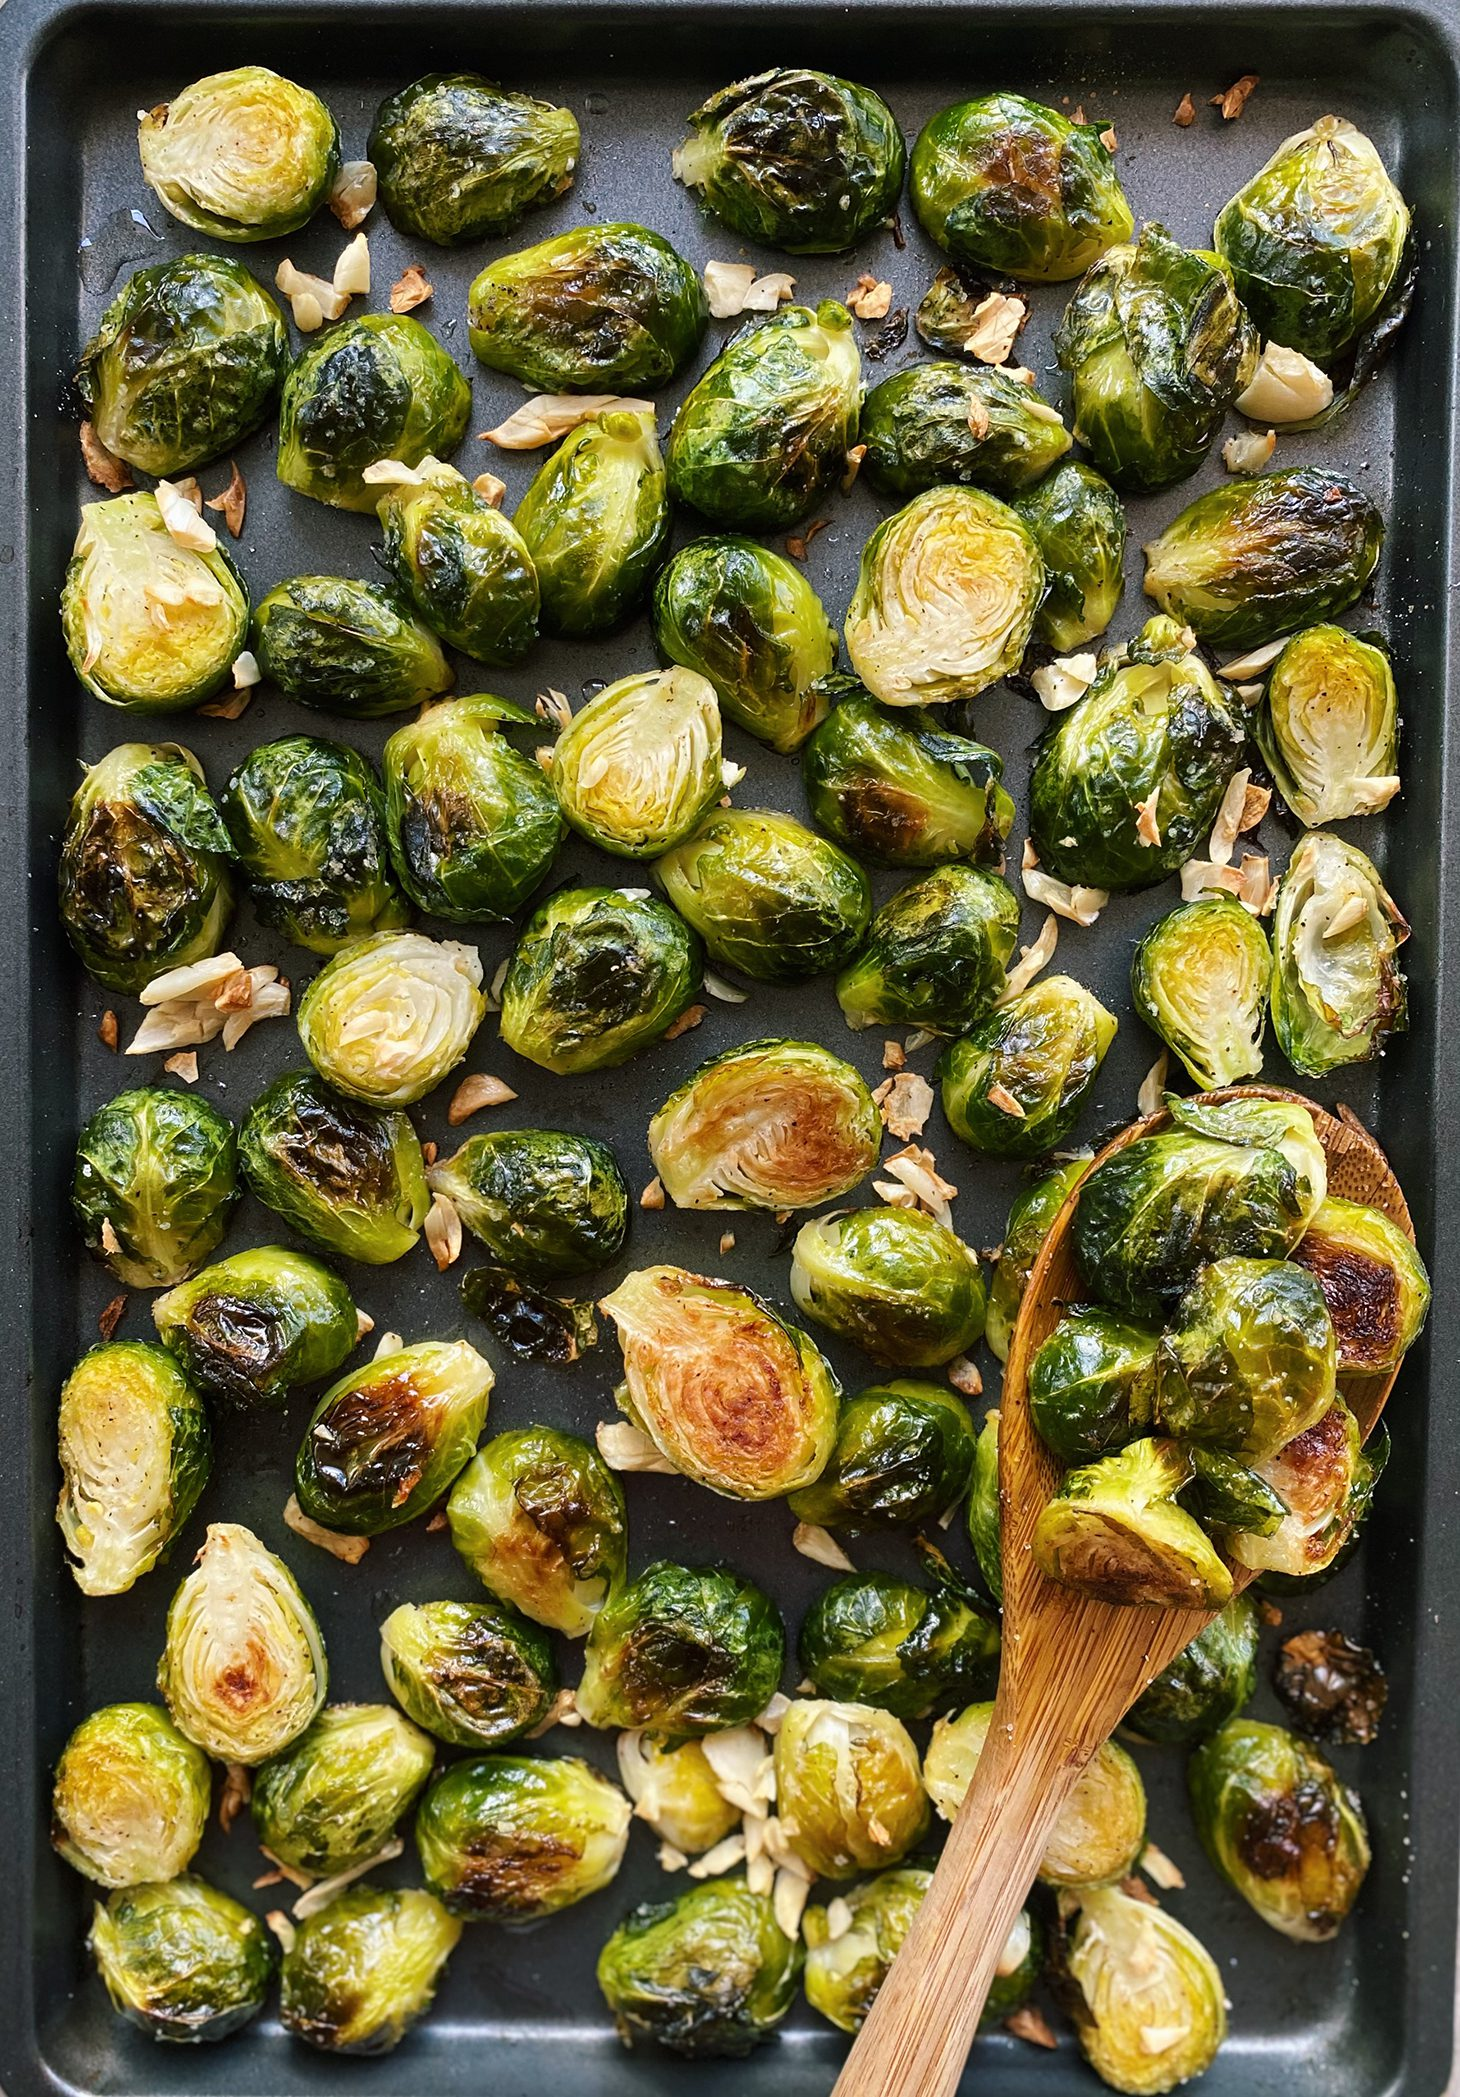 Garlic and Balsamic Roasted Brussel Sprout Recipe